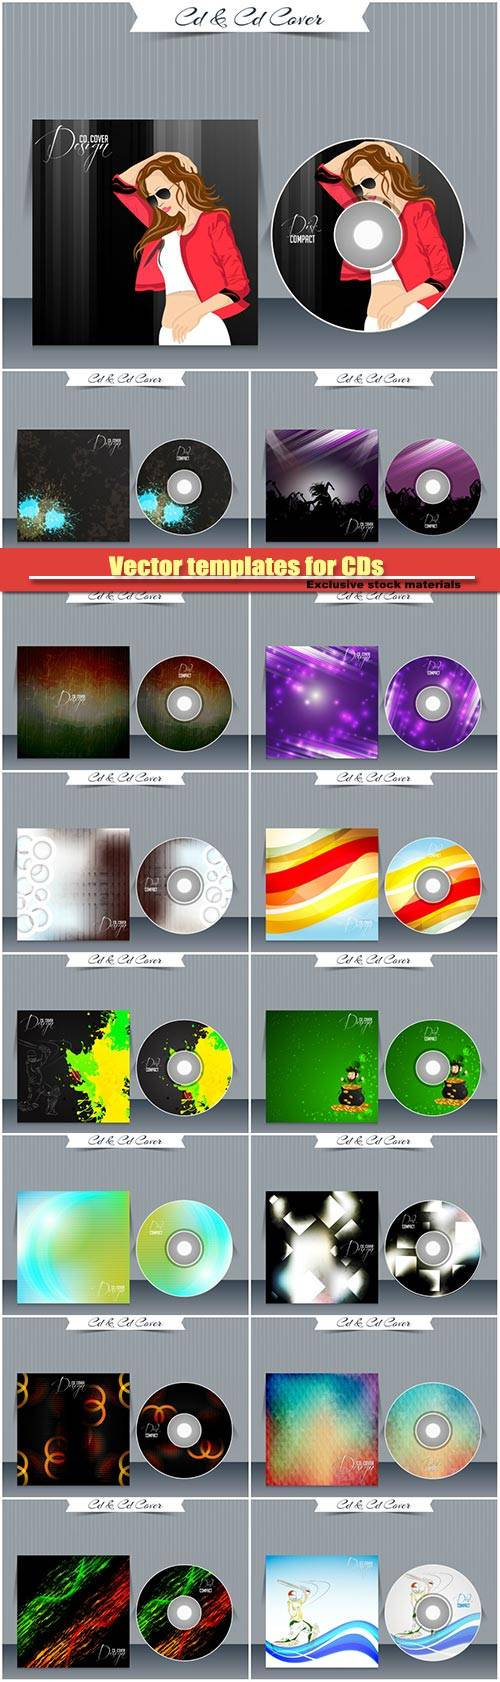 Vector templates for CDs